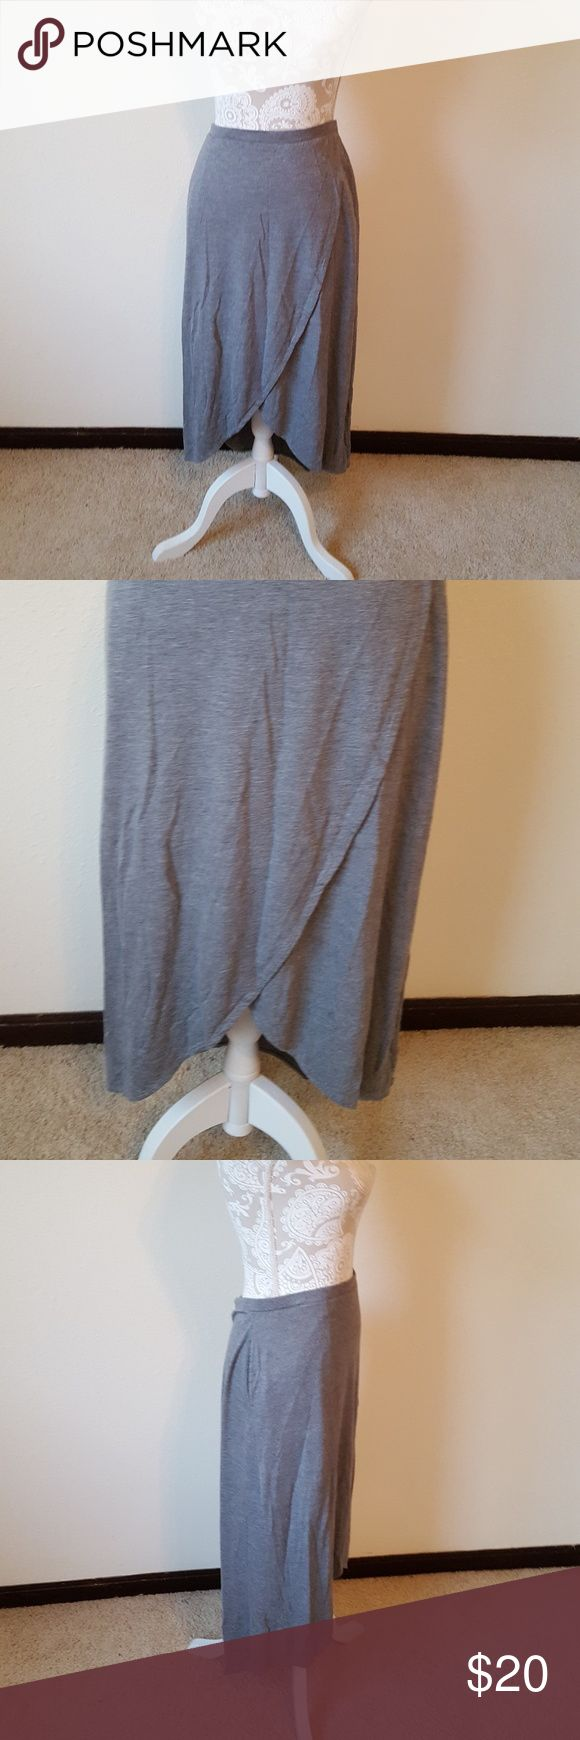 Gap Grey Tulip Skirt Has been worn Size medium Elastic waist Tulip style bottom High low style Flaw: has 2 small holes on the back (shown in pictures, hardly noticeable when wearing) No Trades :283 GAP Skirts Asymmetrical